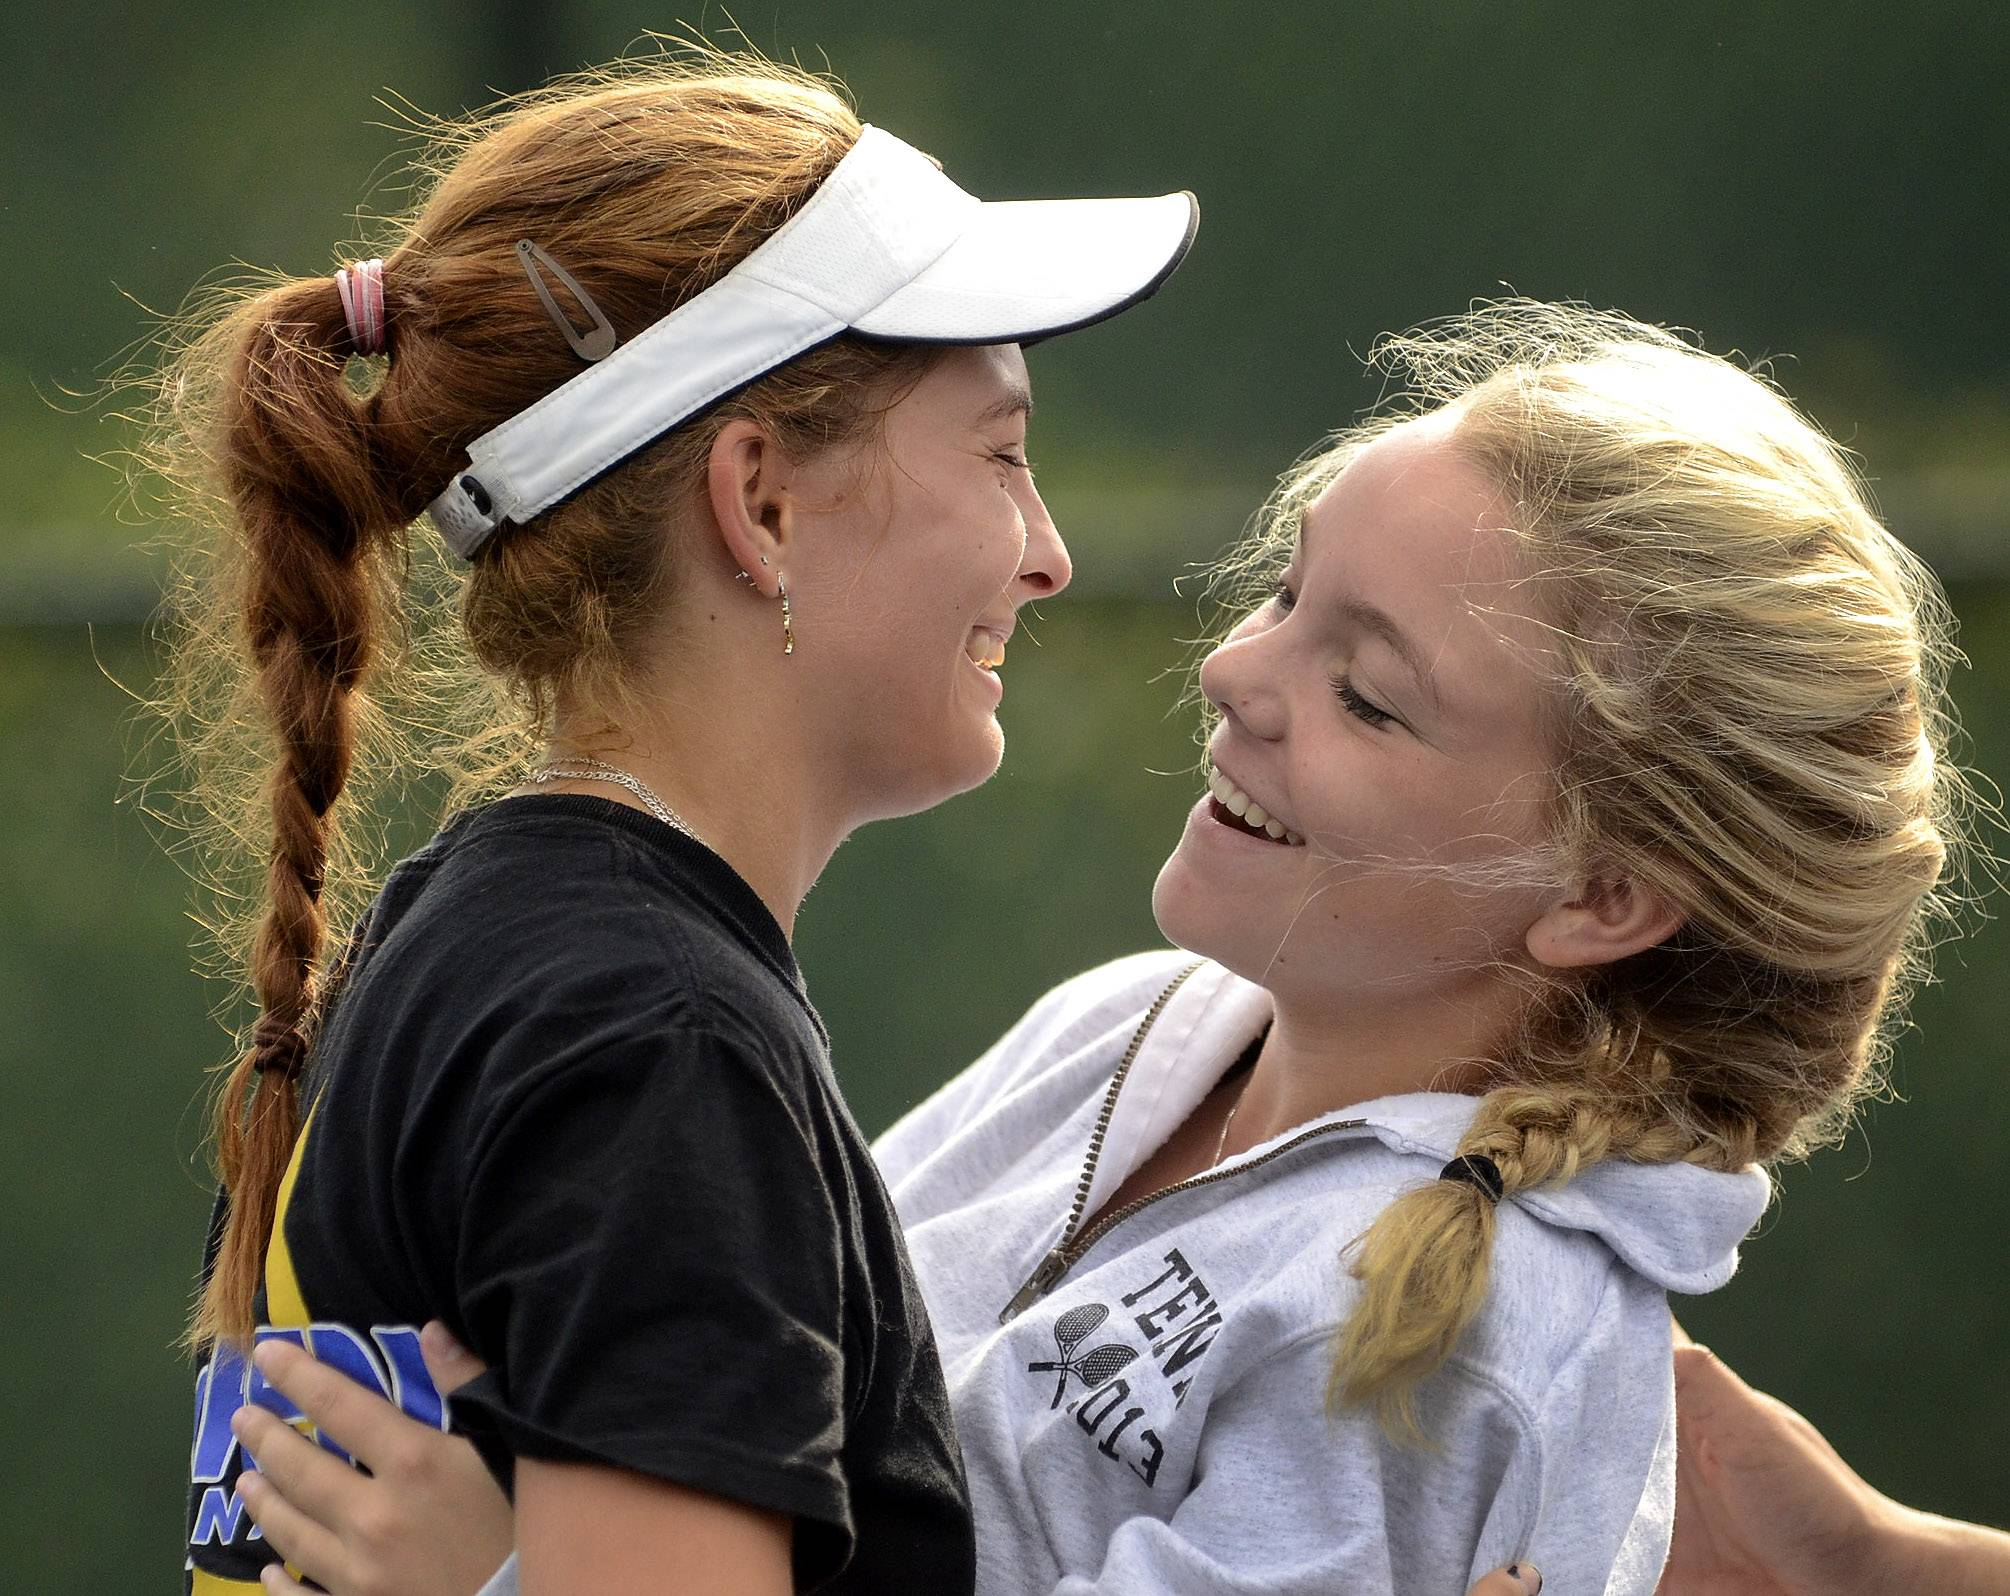 Karyna Bihel of Warren, left, is congratulated by Halle Roach of Libertyville, after finishing second to Lake Forest's Elizabeth Zordani during the North Suburban Conference girls tennis meet last season. Bihel and Roach figure to play key roles for their teams again this fall.